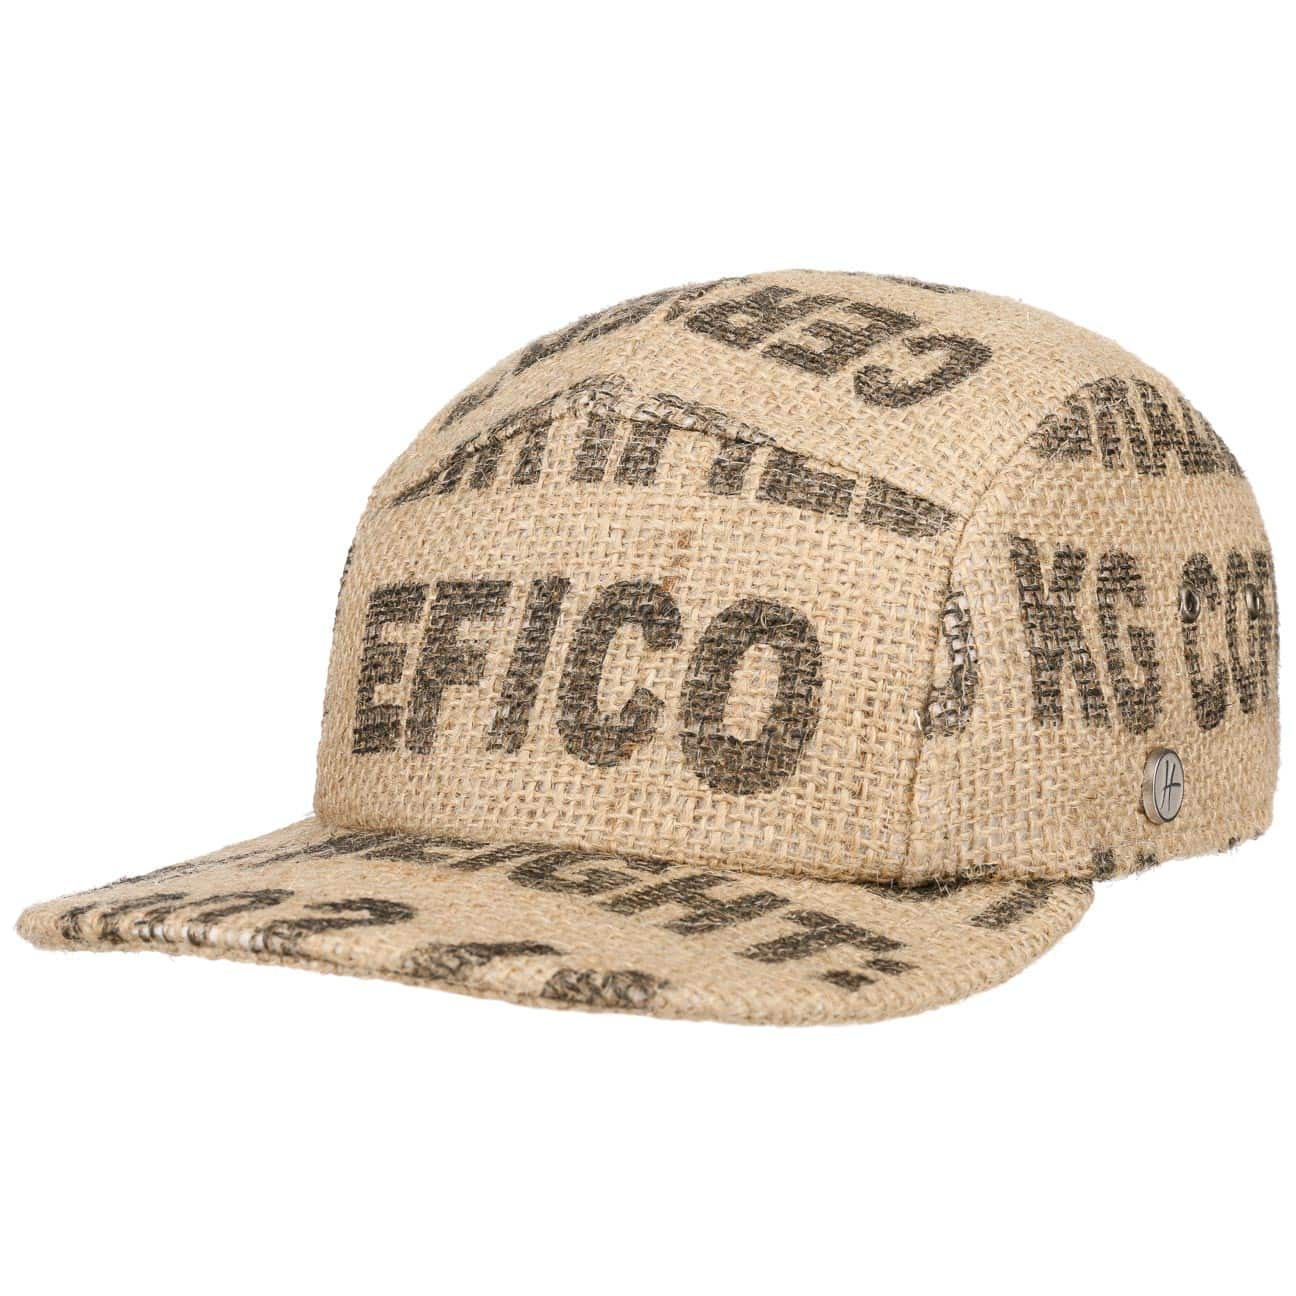 Gorra Cafe Ristretto by ReHats